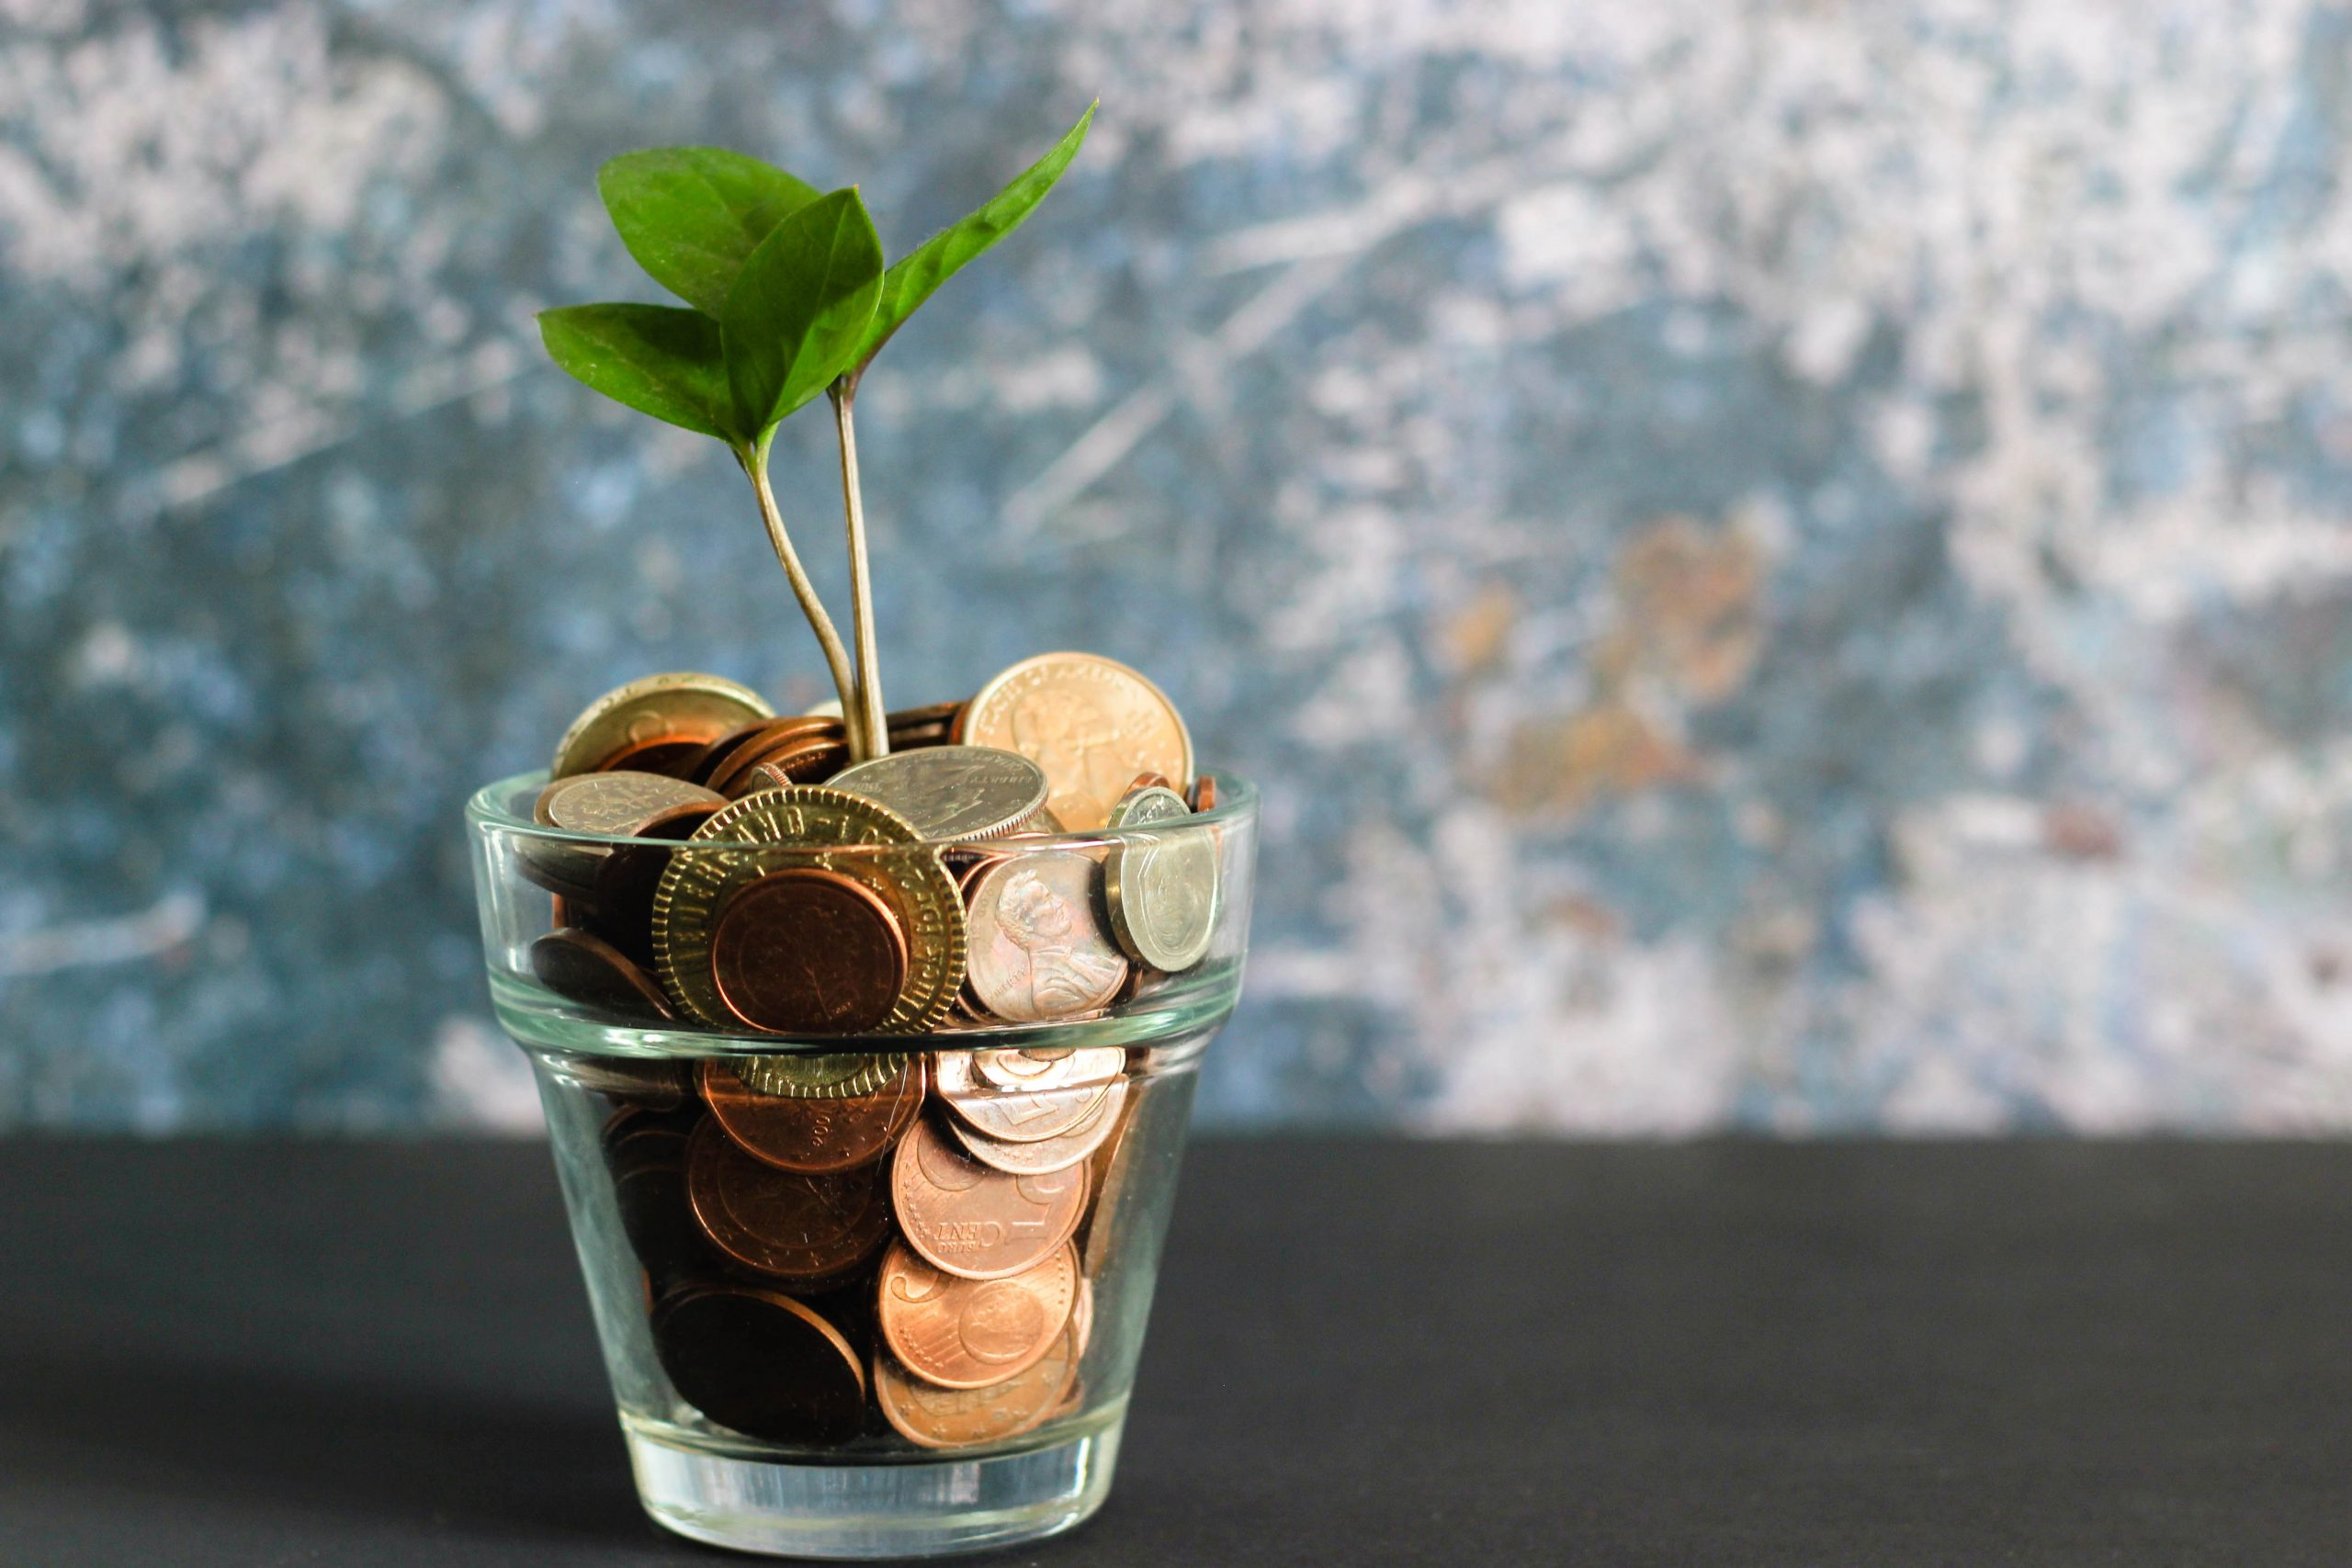 a cup of coins with a plant sprouting from above